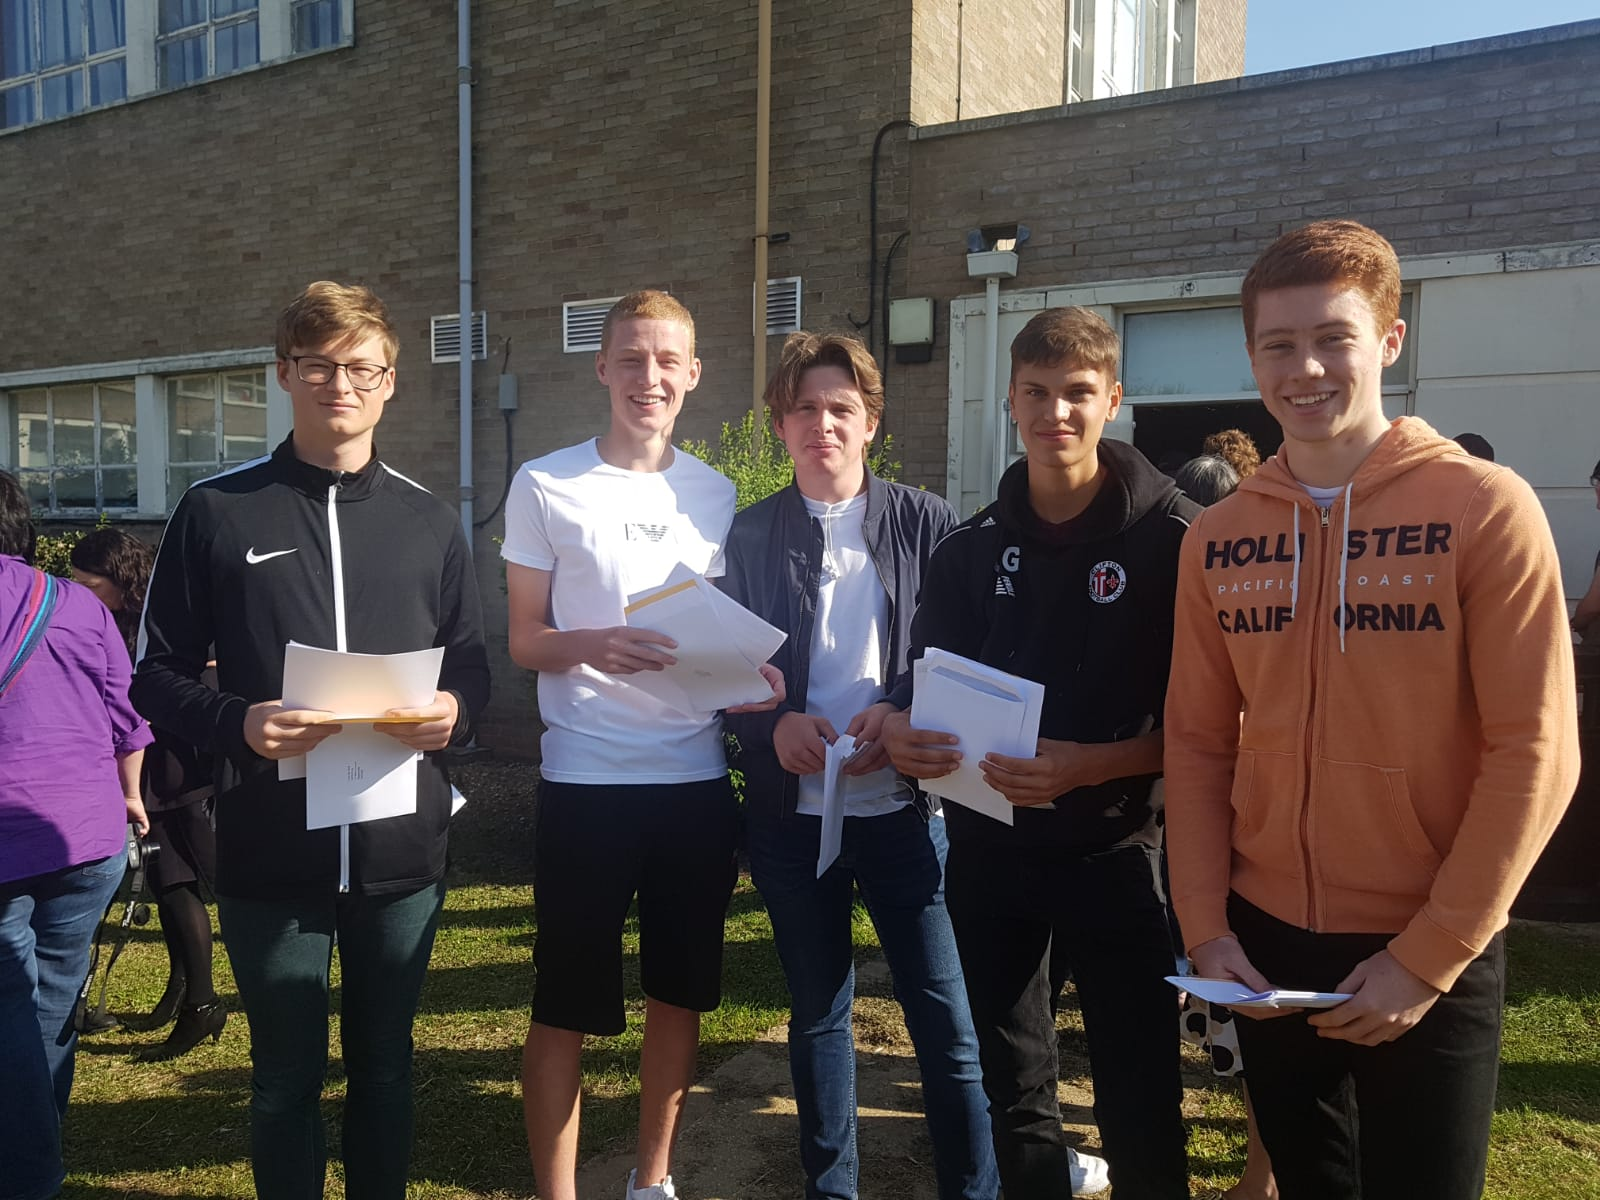 Hard working students at Stratton Upper School receive GCSE results to be proud of